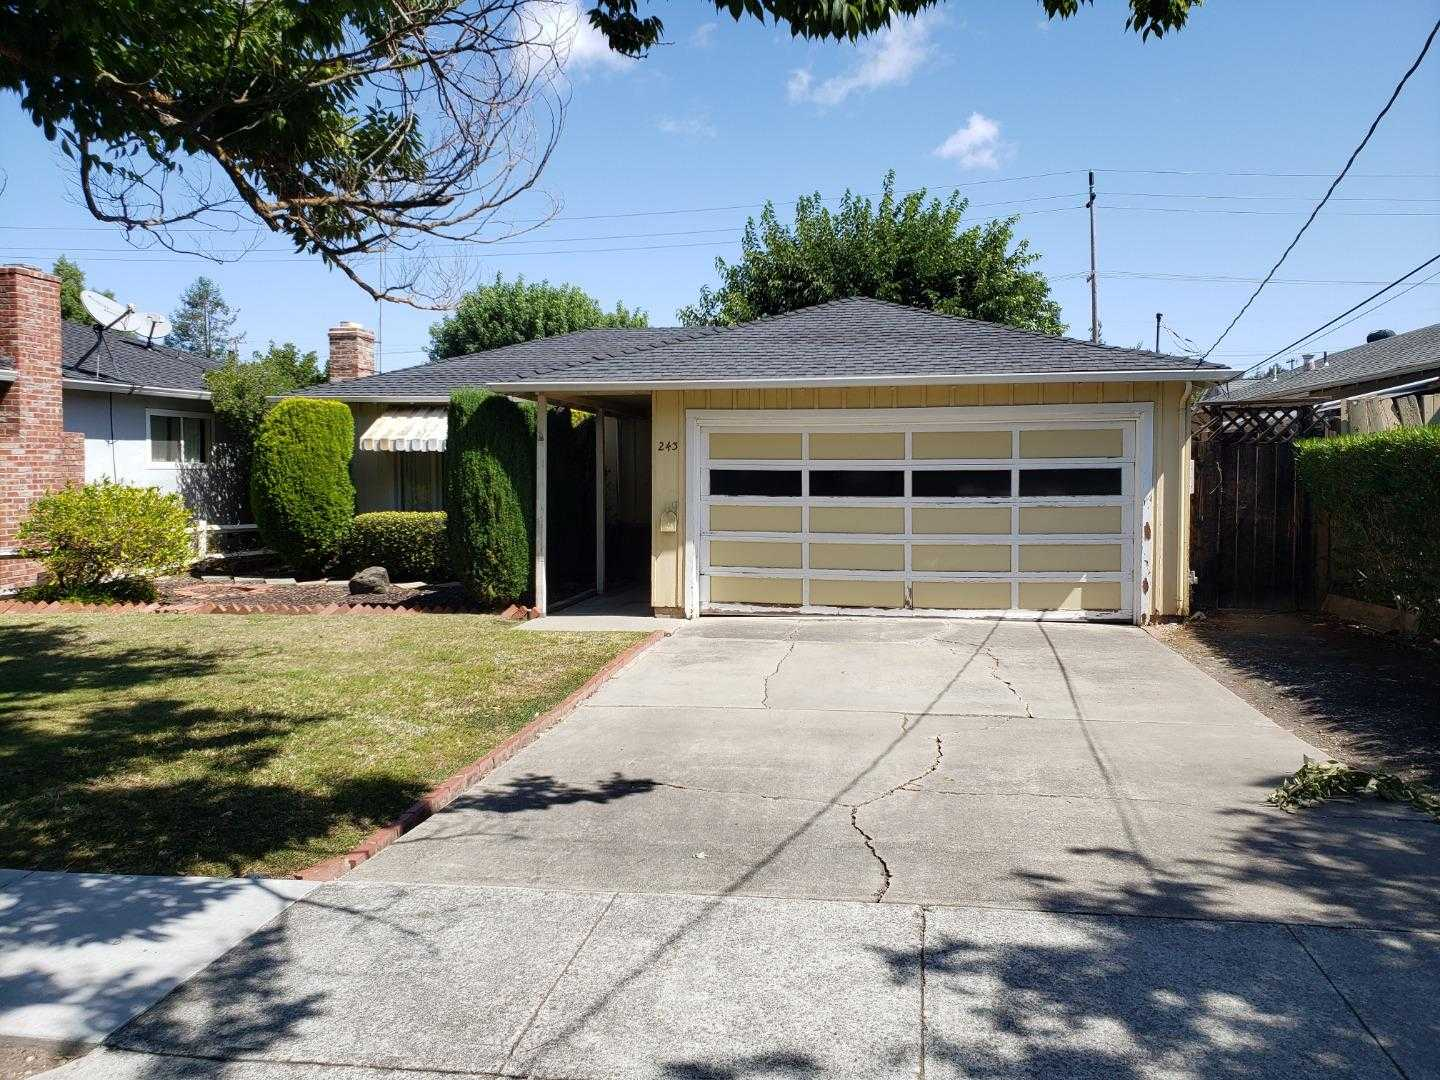 $1,099,000 - 2Br/1Ba -  for Sale in Redwood City